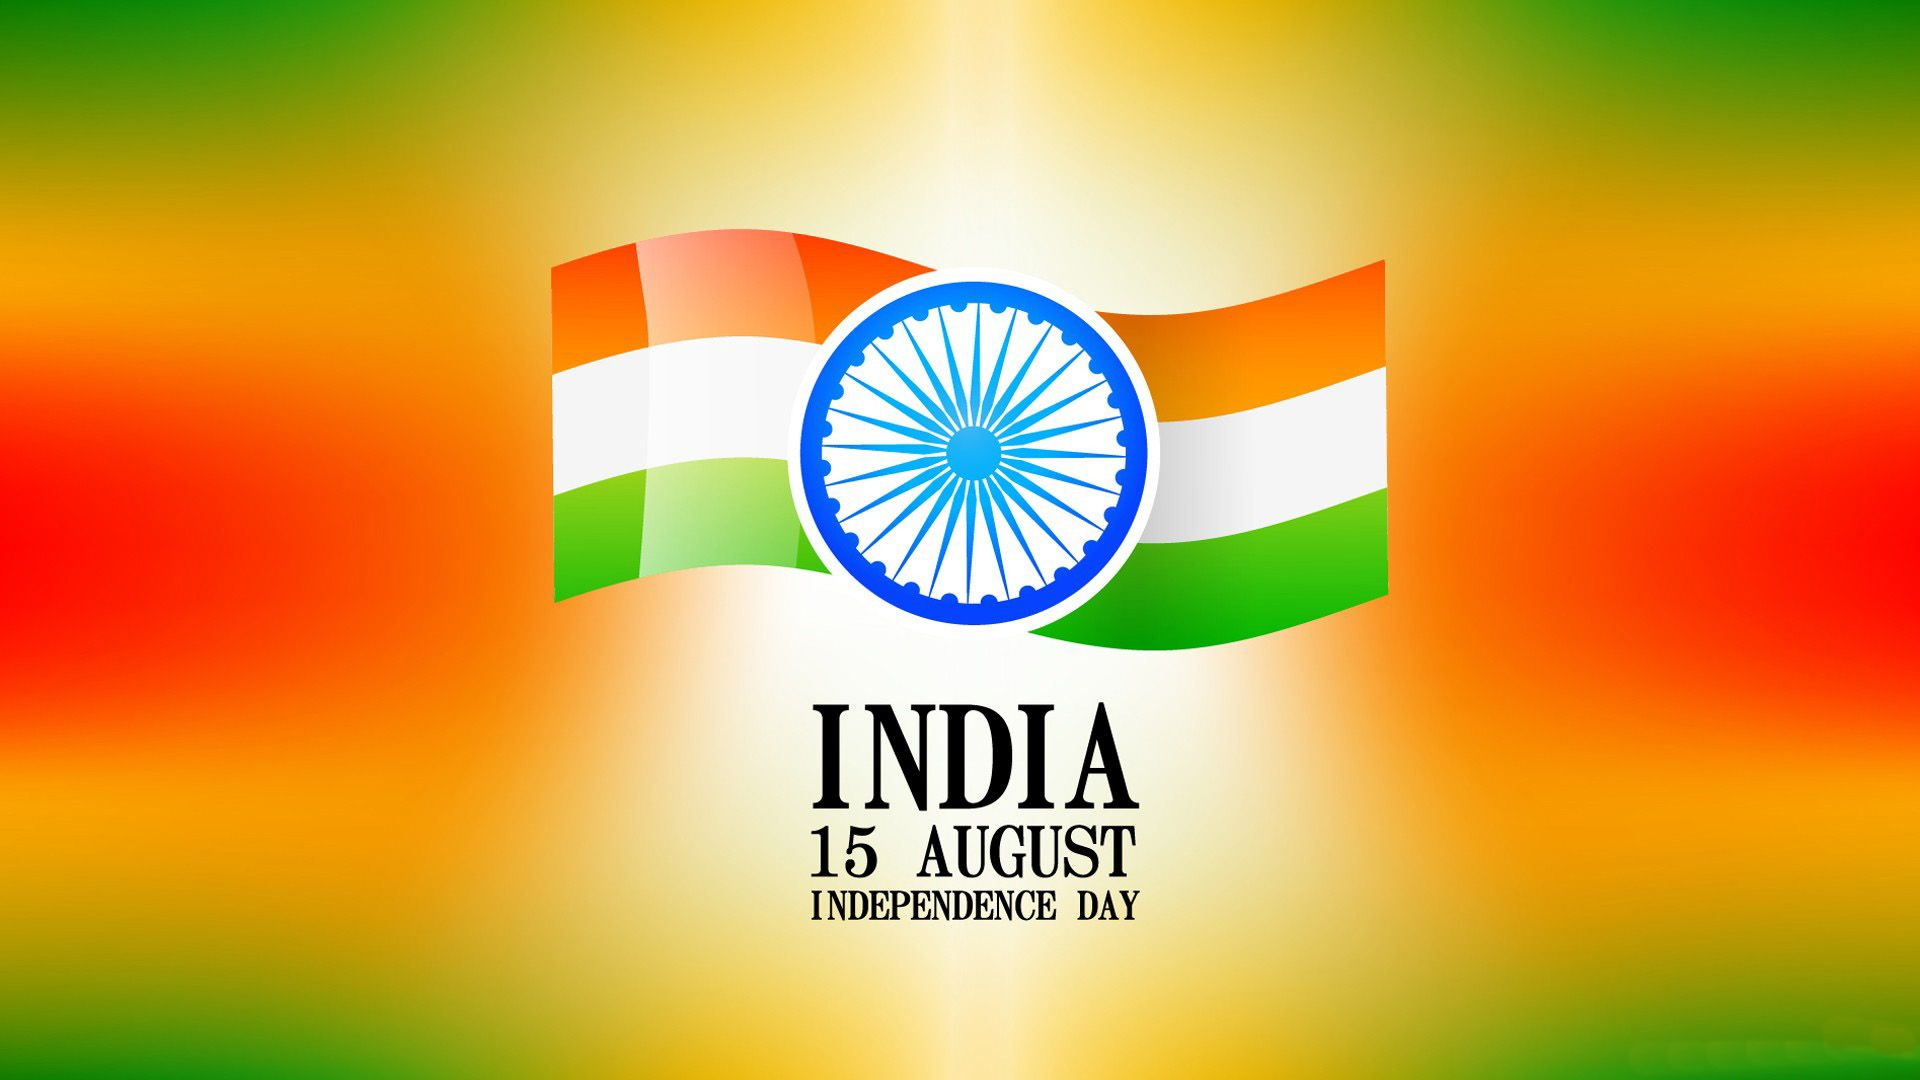 Indian Flag Images Photos Pictures And Wallpapers Free Download Atulhost In 2020 Independence Day Slogans Happy Independence Day Wishes Independence Day Wishes